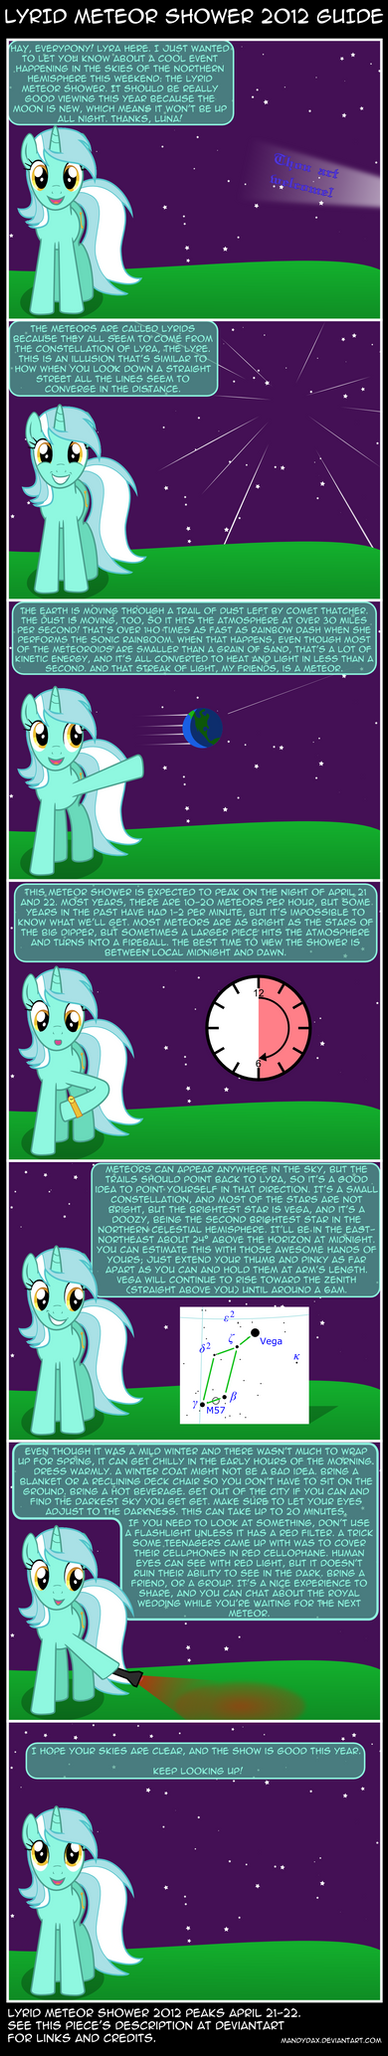 Lyra Explains the Lyrid Meteor Shower by mandydax